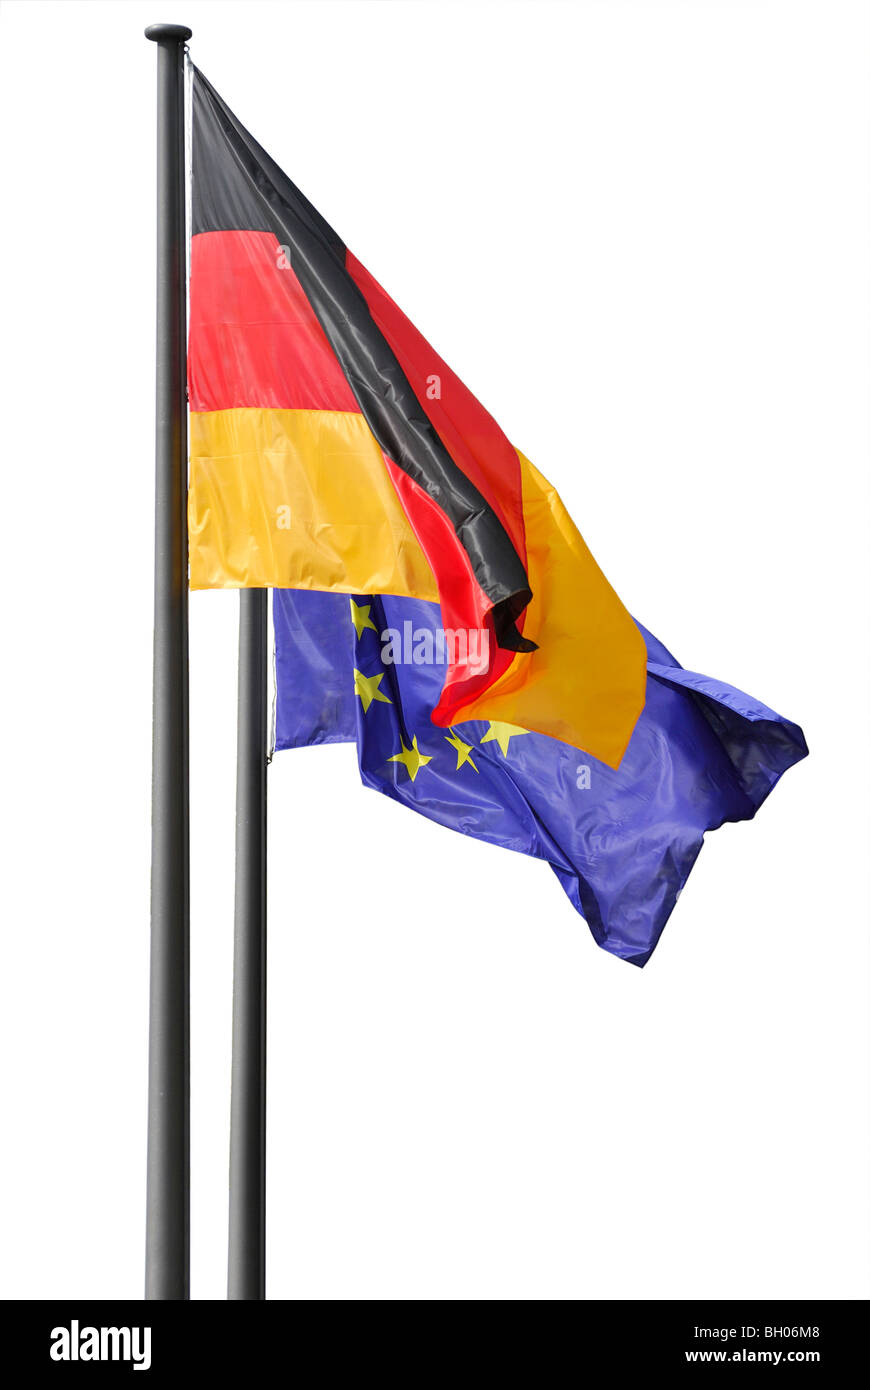 Two flags of Germany and EU. Berlin, Germany - Stock Image